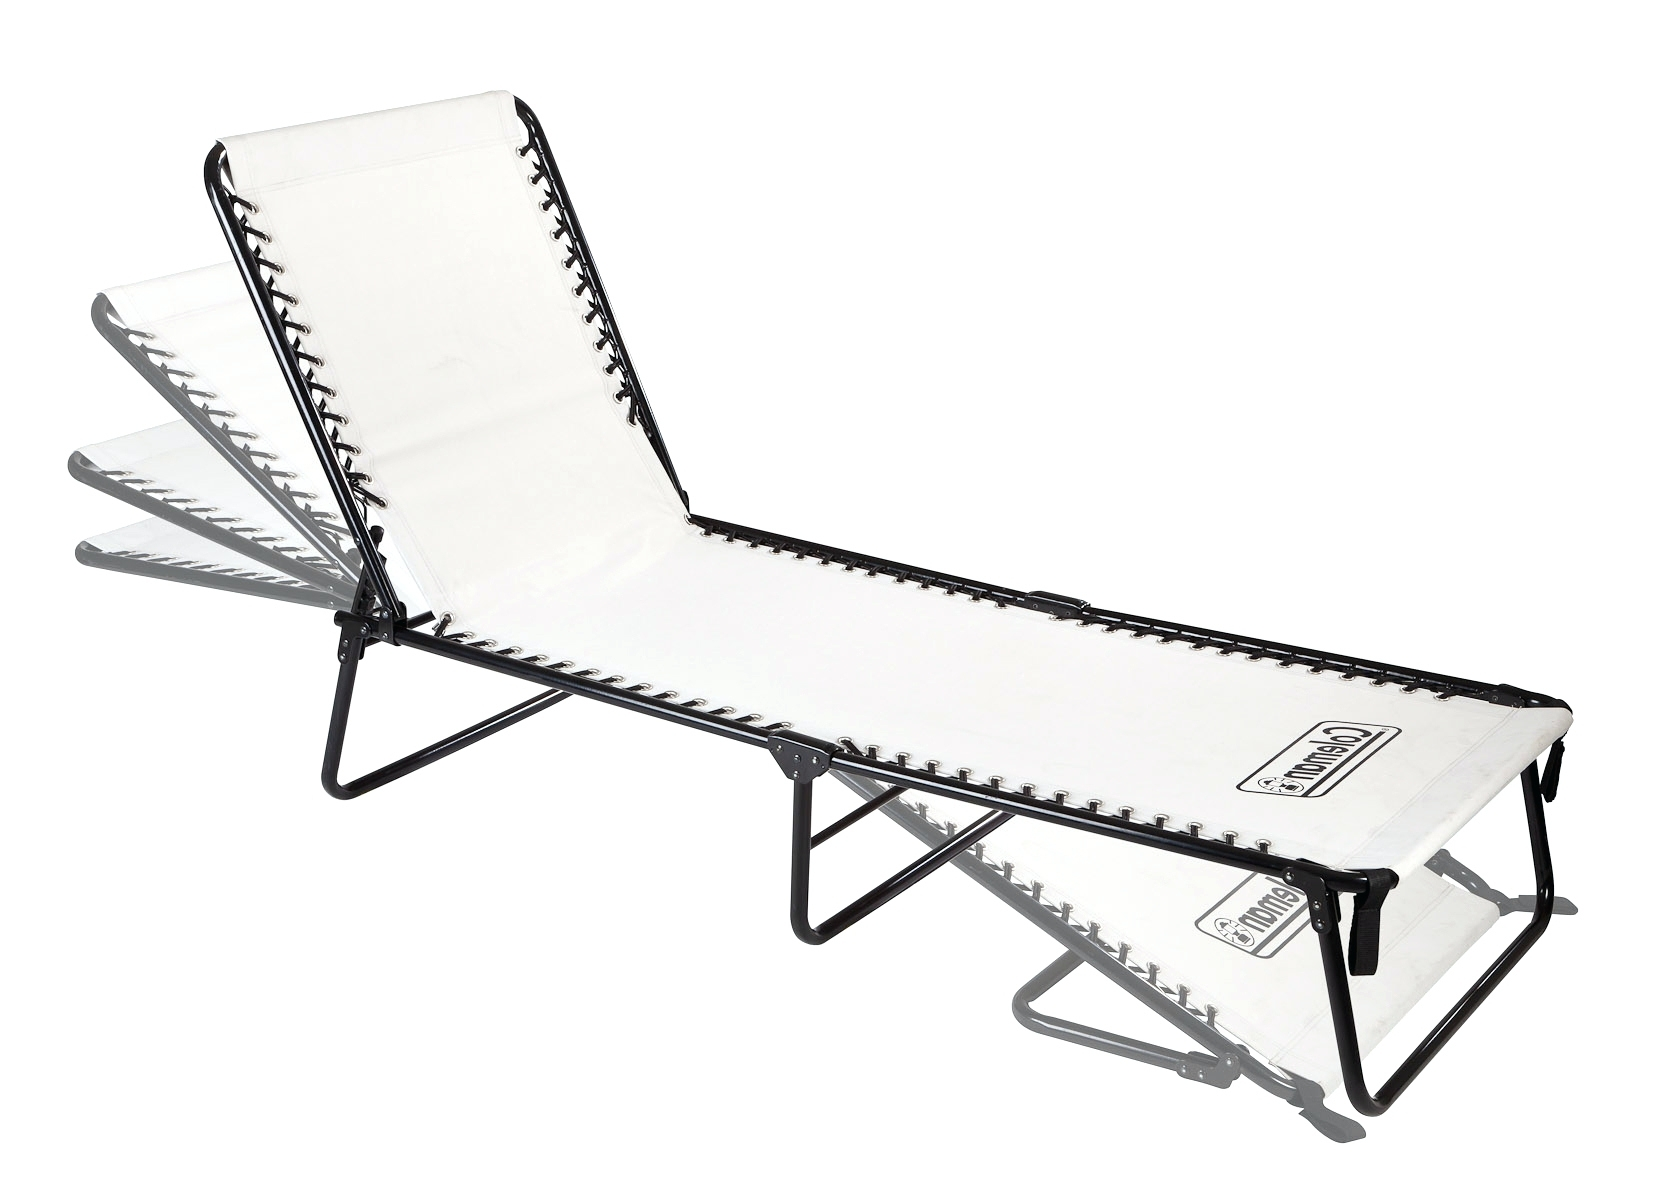 Folding Chaise Lounge Chairs Intended For Well Known Portable Chaise Lounge Chairs Outdoor • Lounge Chairs Ideas (View 9 of 15)